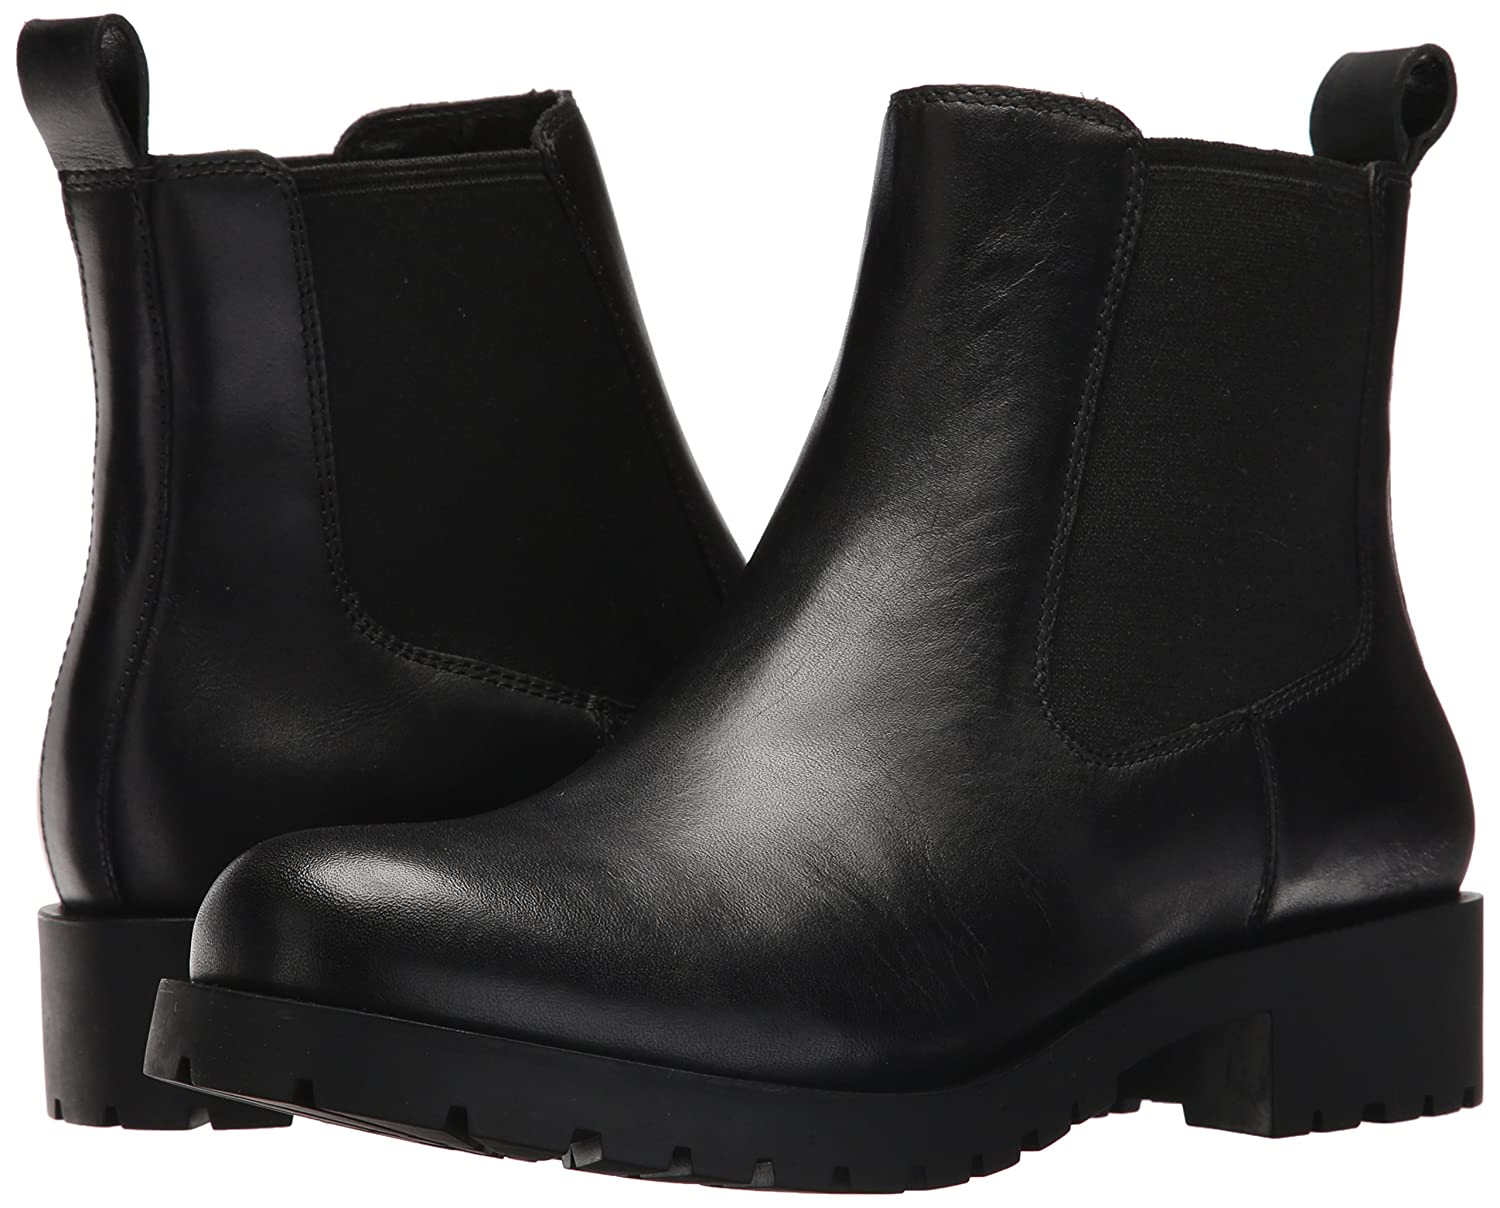 Cole Haan II Women's Jannie Bootie WP II Haan B01N4TPI0P 9 B(M) US|Black Wp Leather a15914